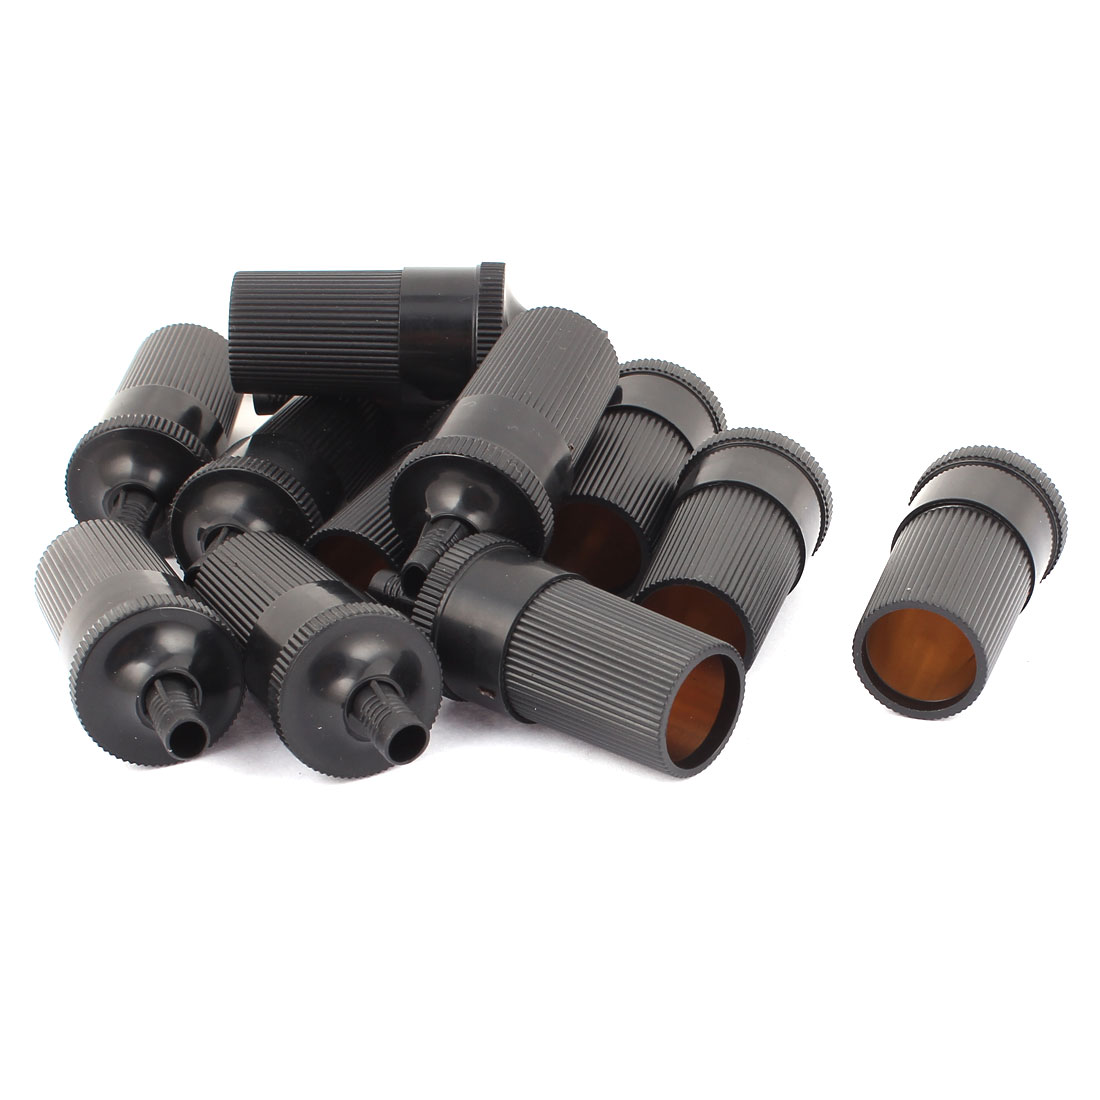 Auto Car Plastic Cylindrical Inline Cigarette Lighter Female Socket Connector Black 12pcs